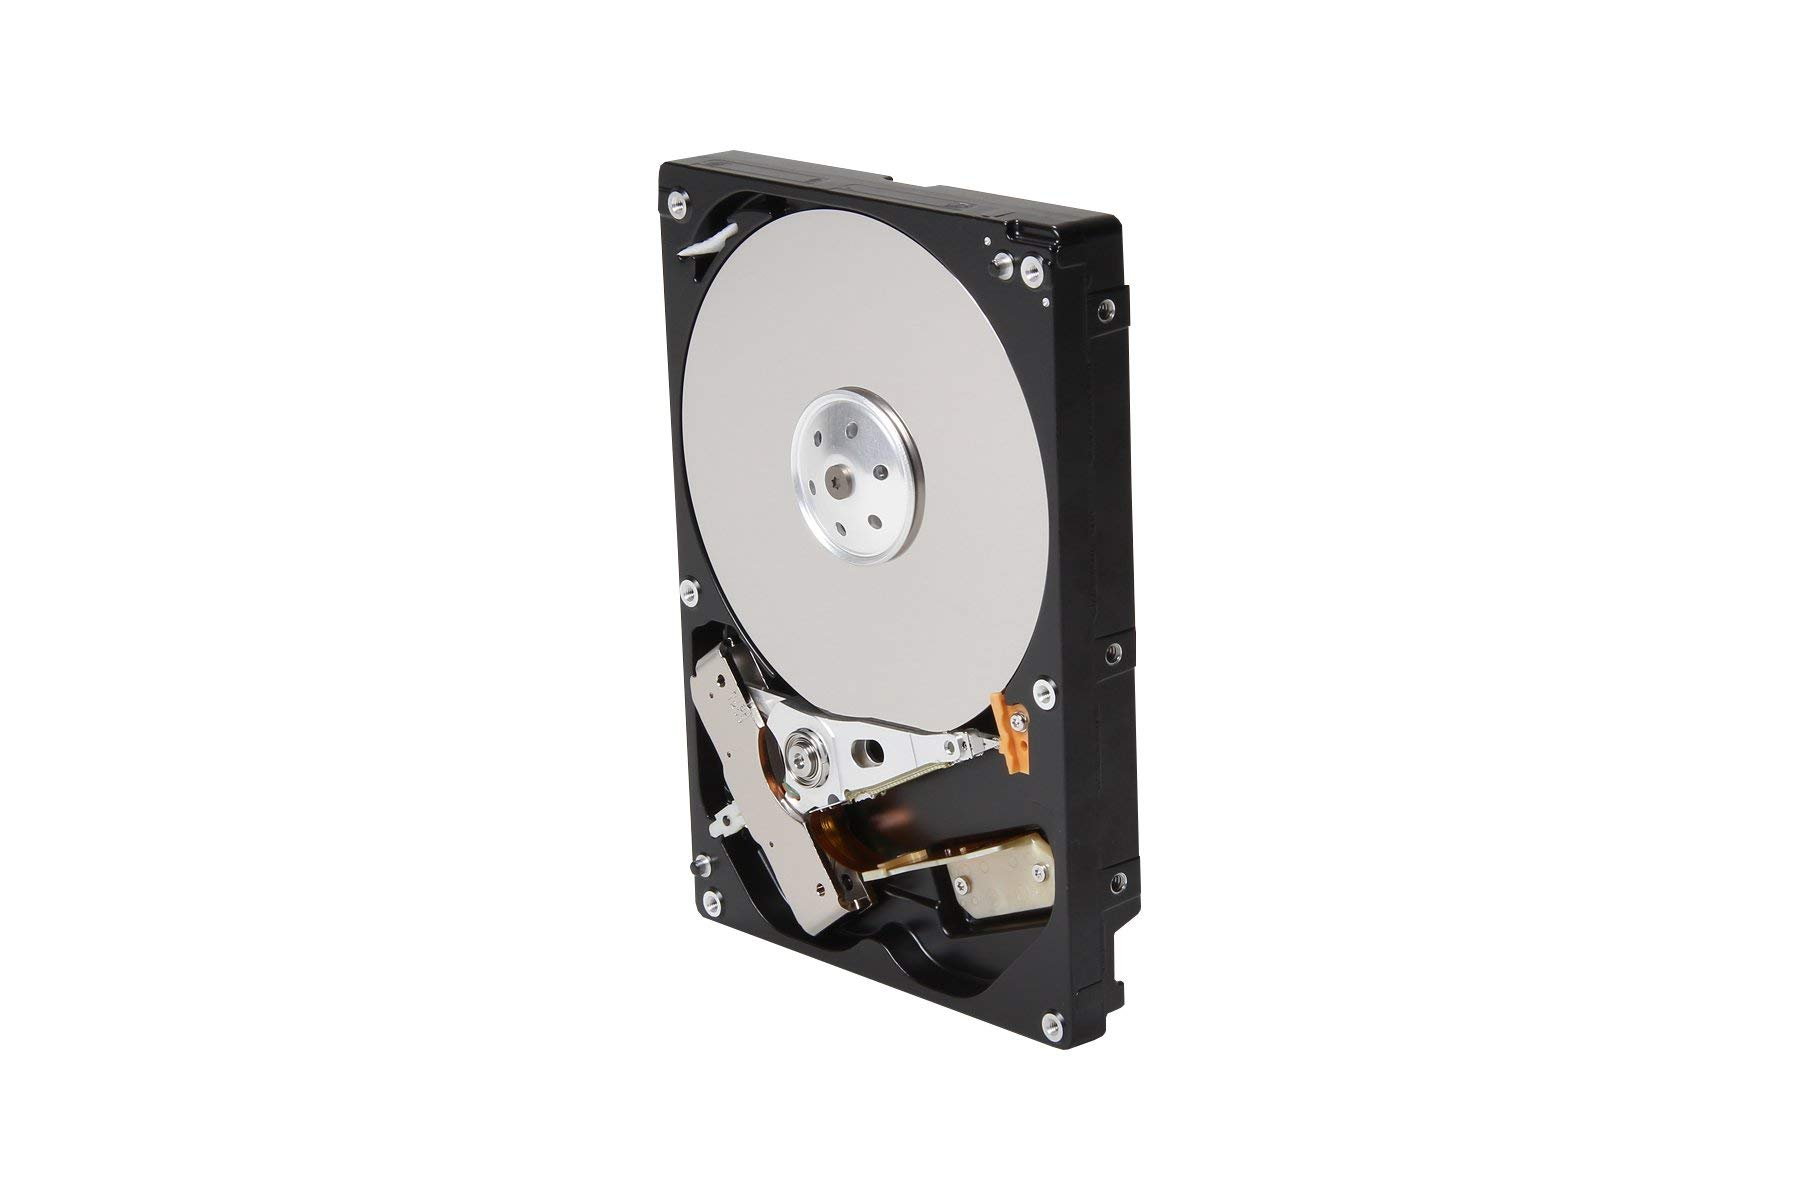 Toshiba-DT01ACA050-500GB-35-inch-SATA-7200RPM-Internal-Hard-DriveParent